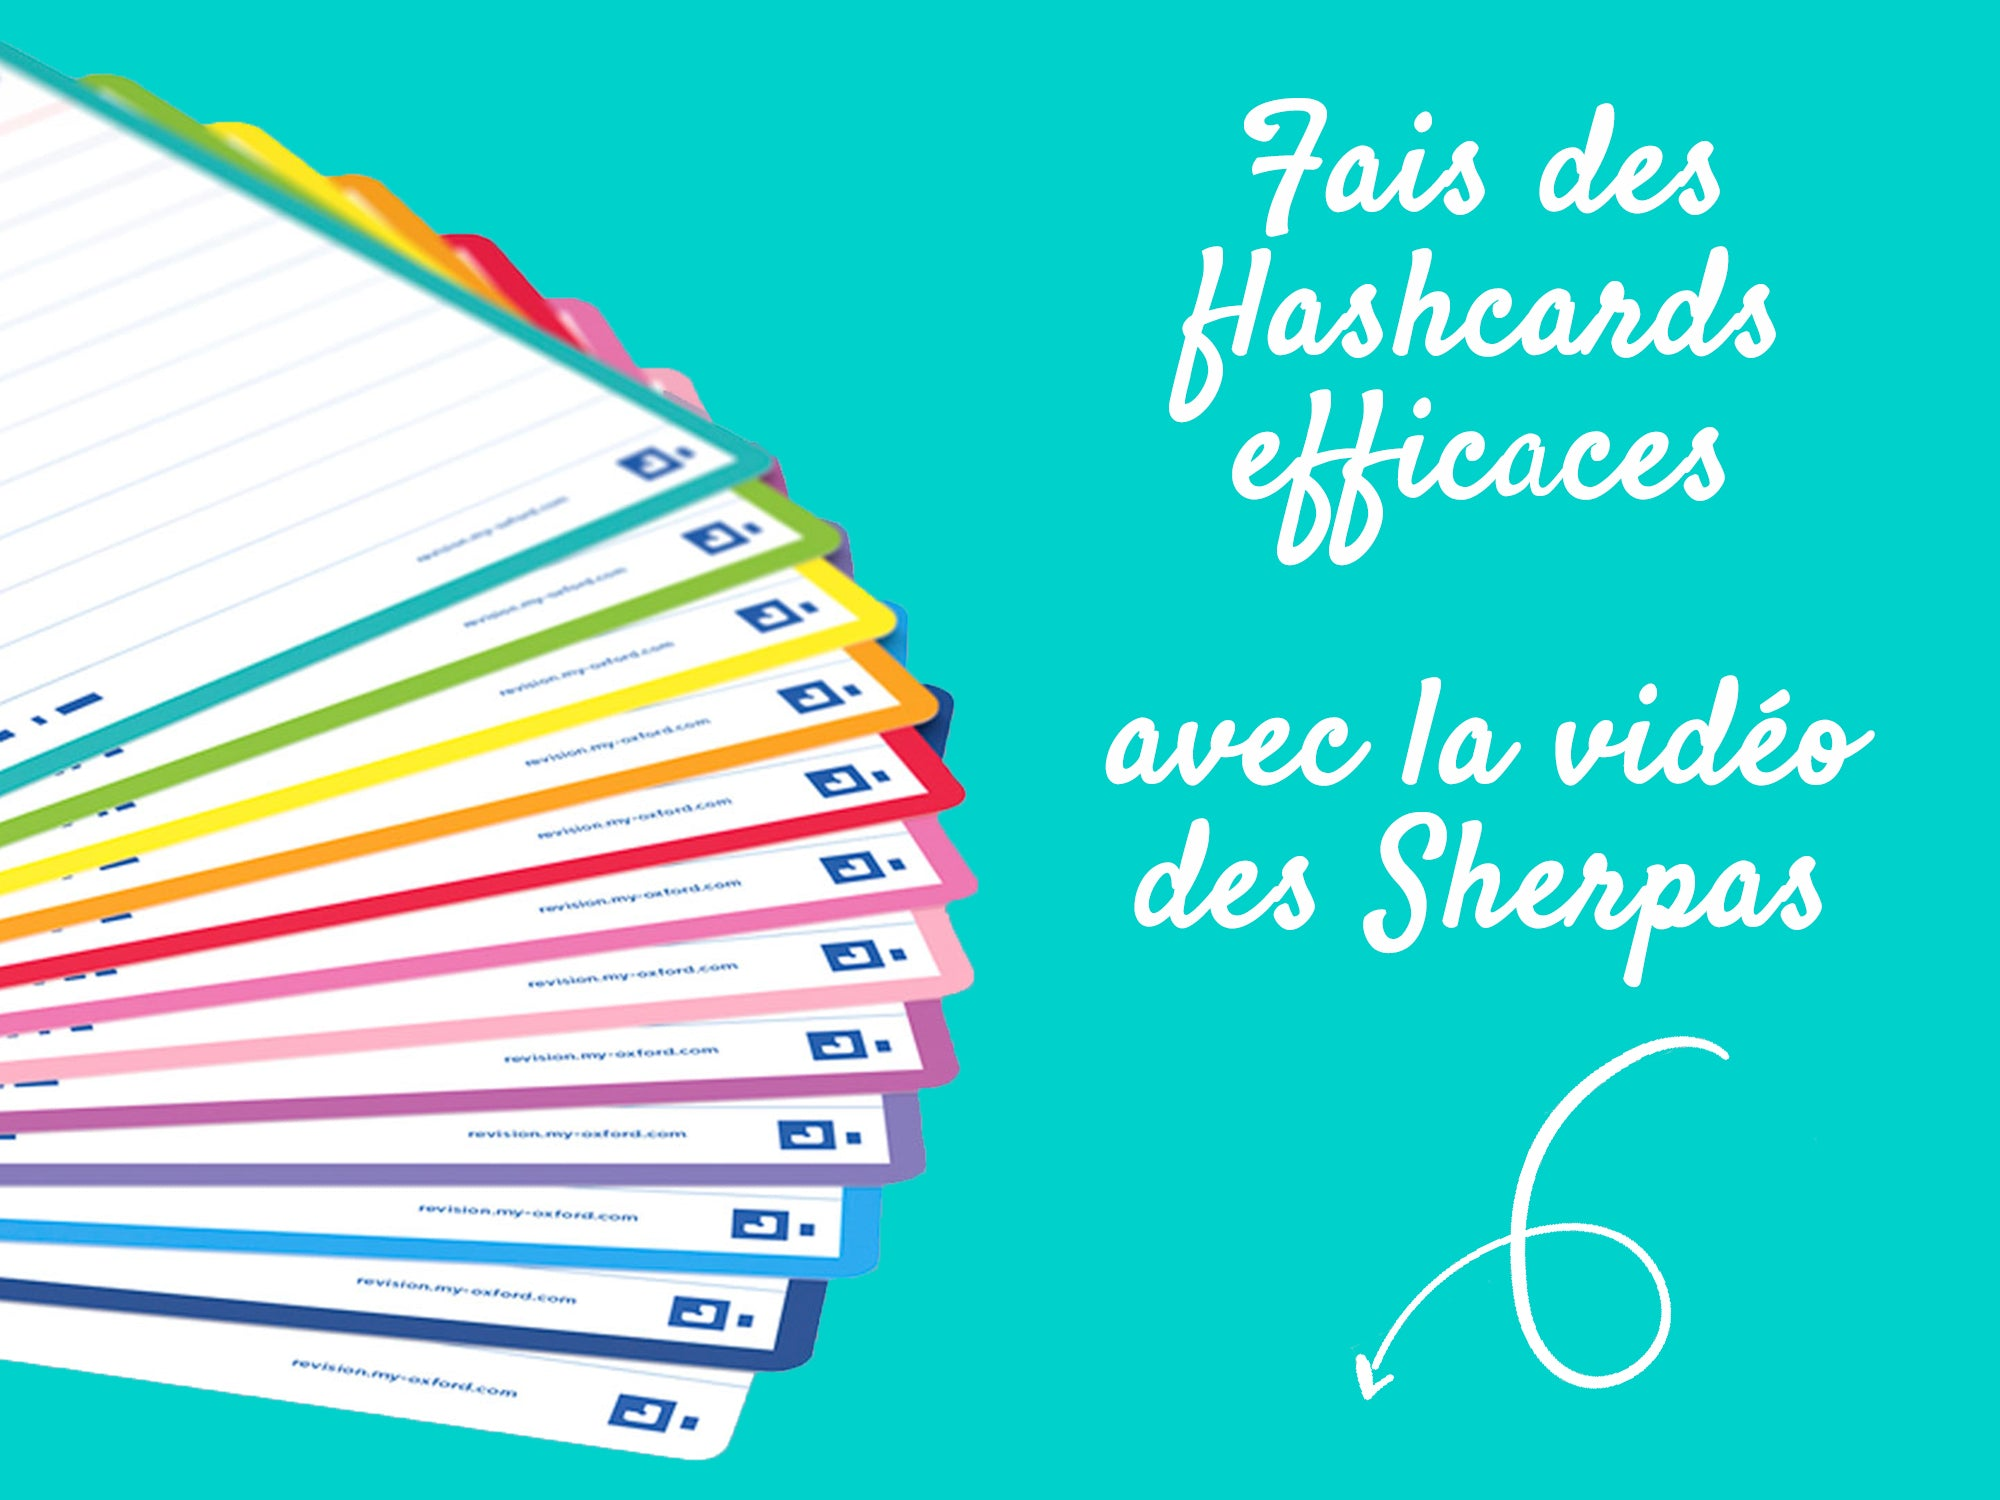 Faire des flashcards efficaces